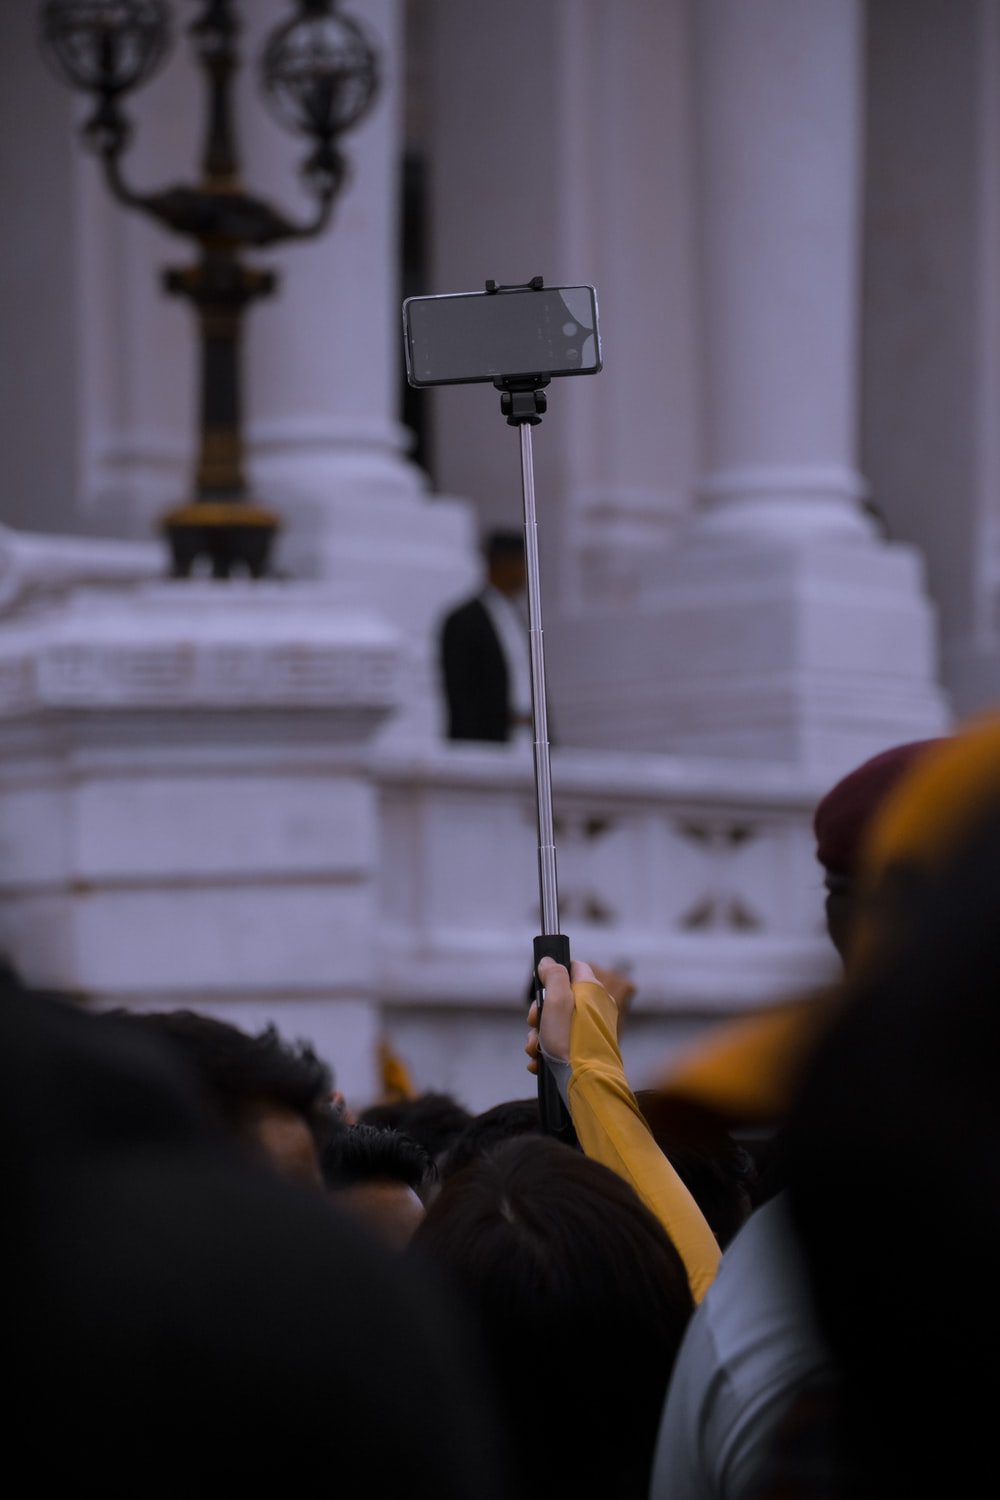 person holding gray monopod